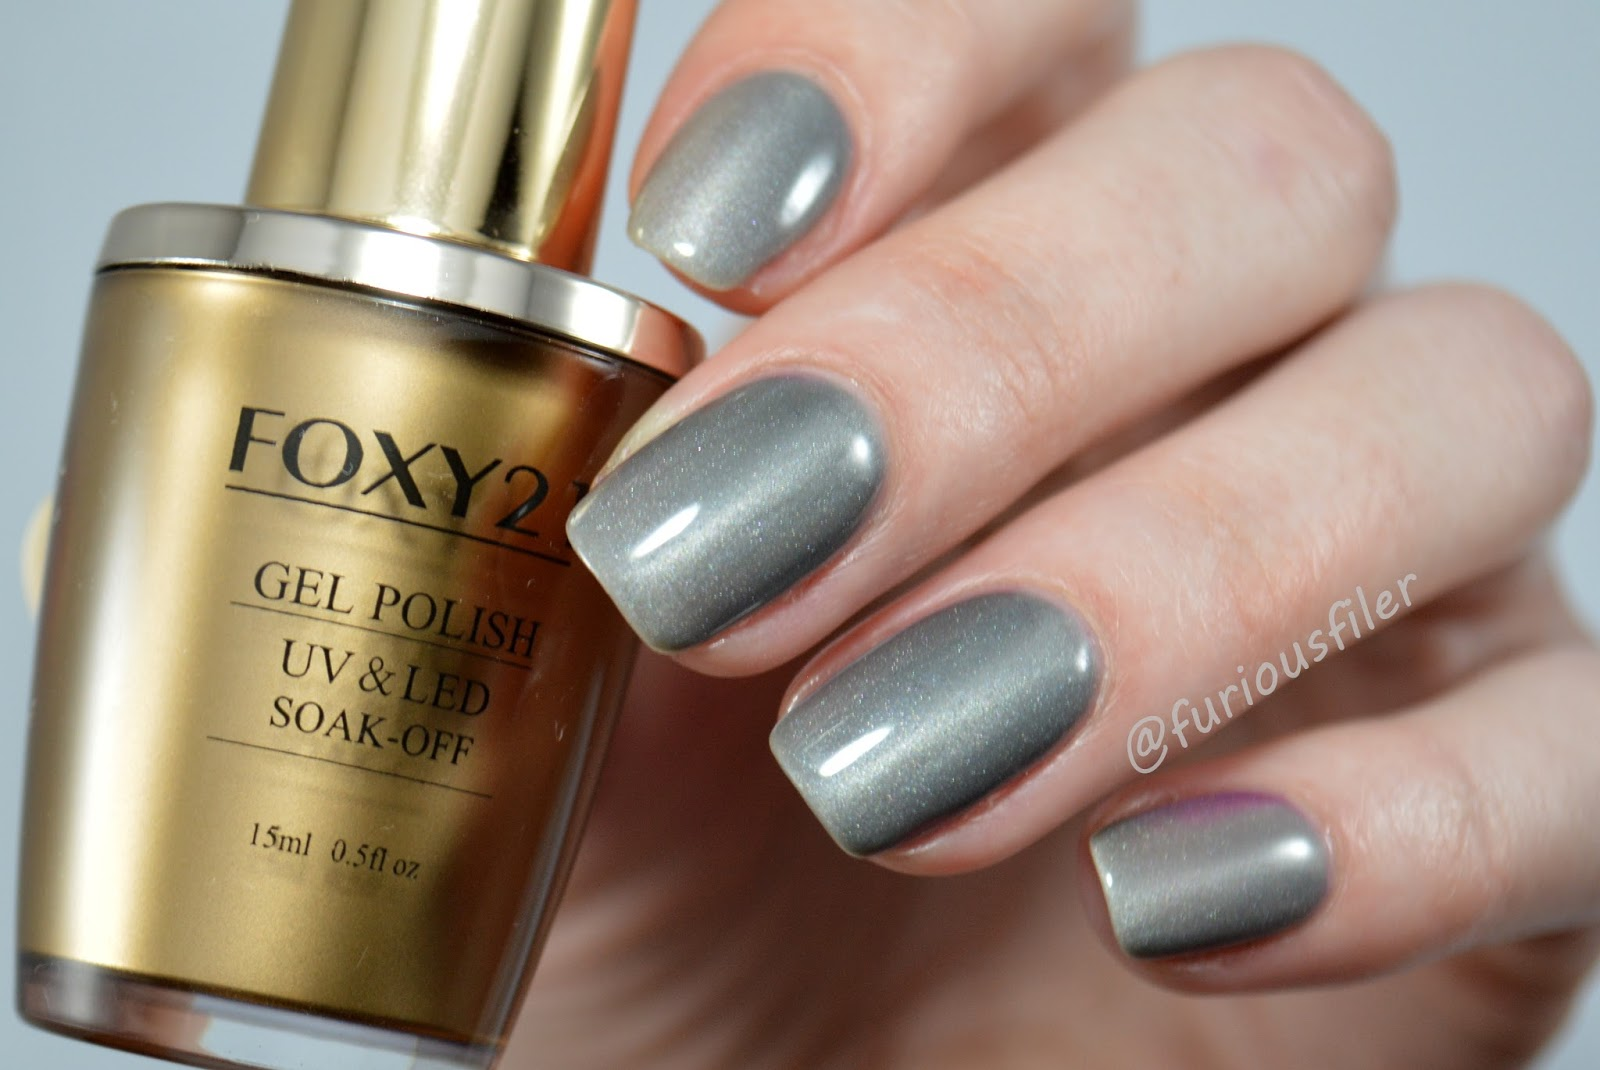 Review | Foxy 21 Gel Nail Polish - FURIOUS FILER